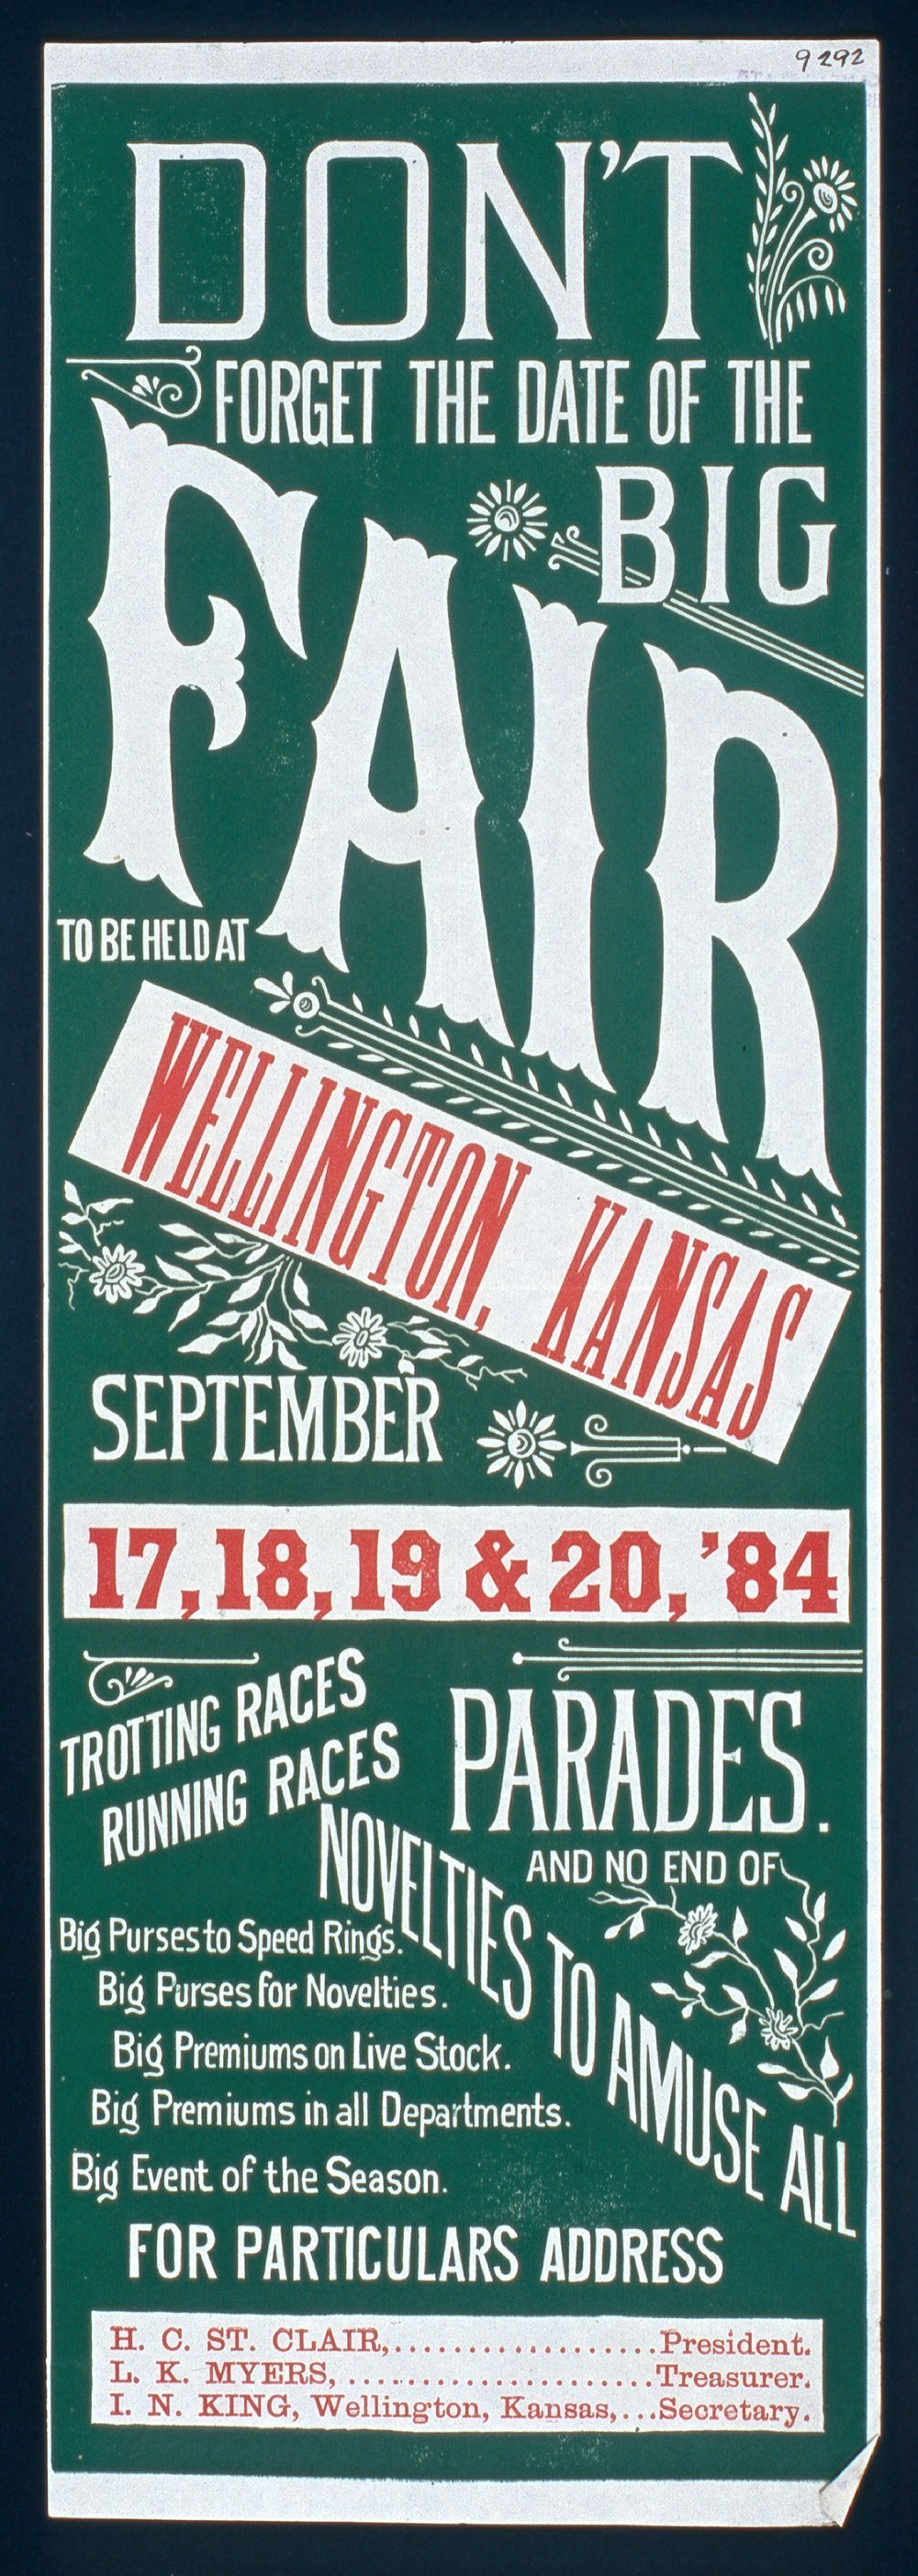 Don't forget the date of the big fair, Wellington, Kansas